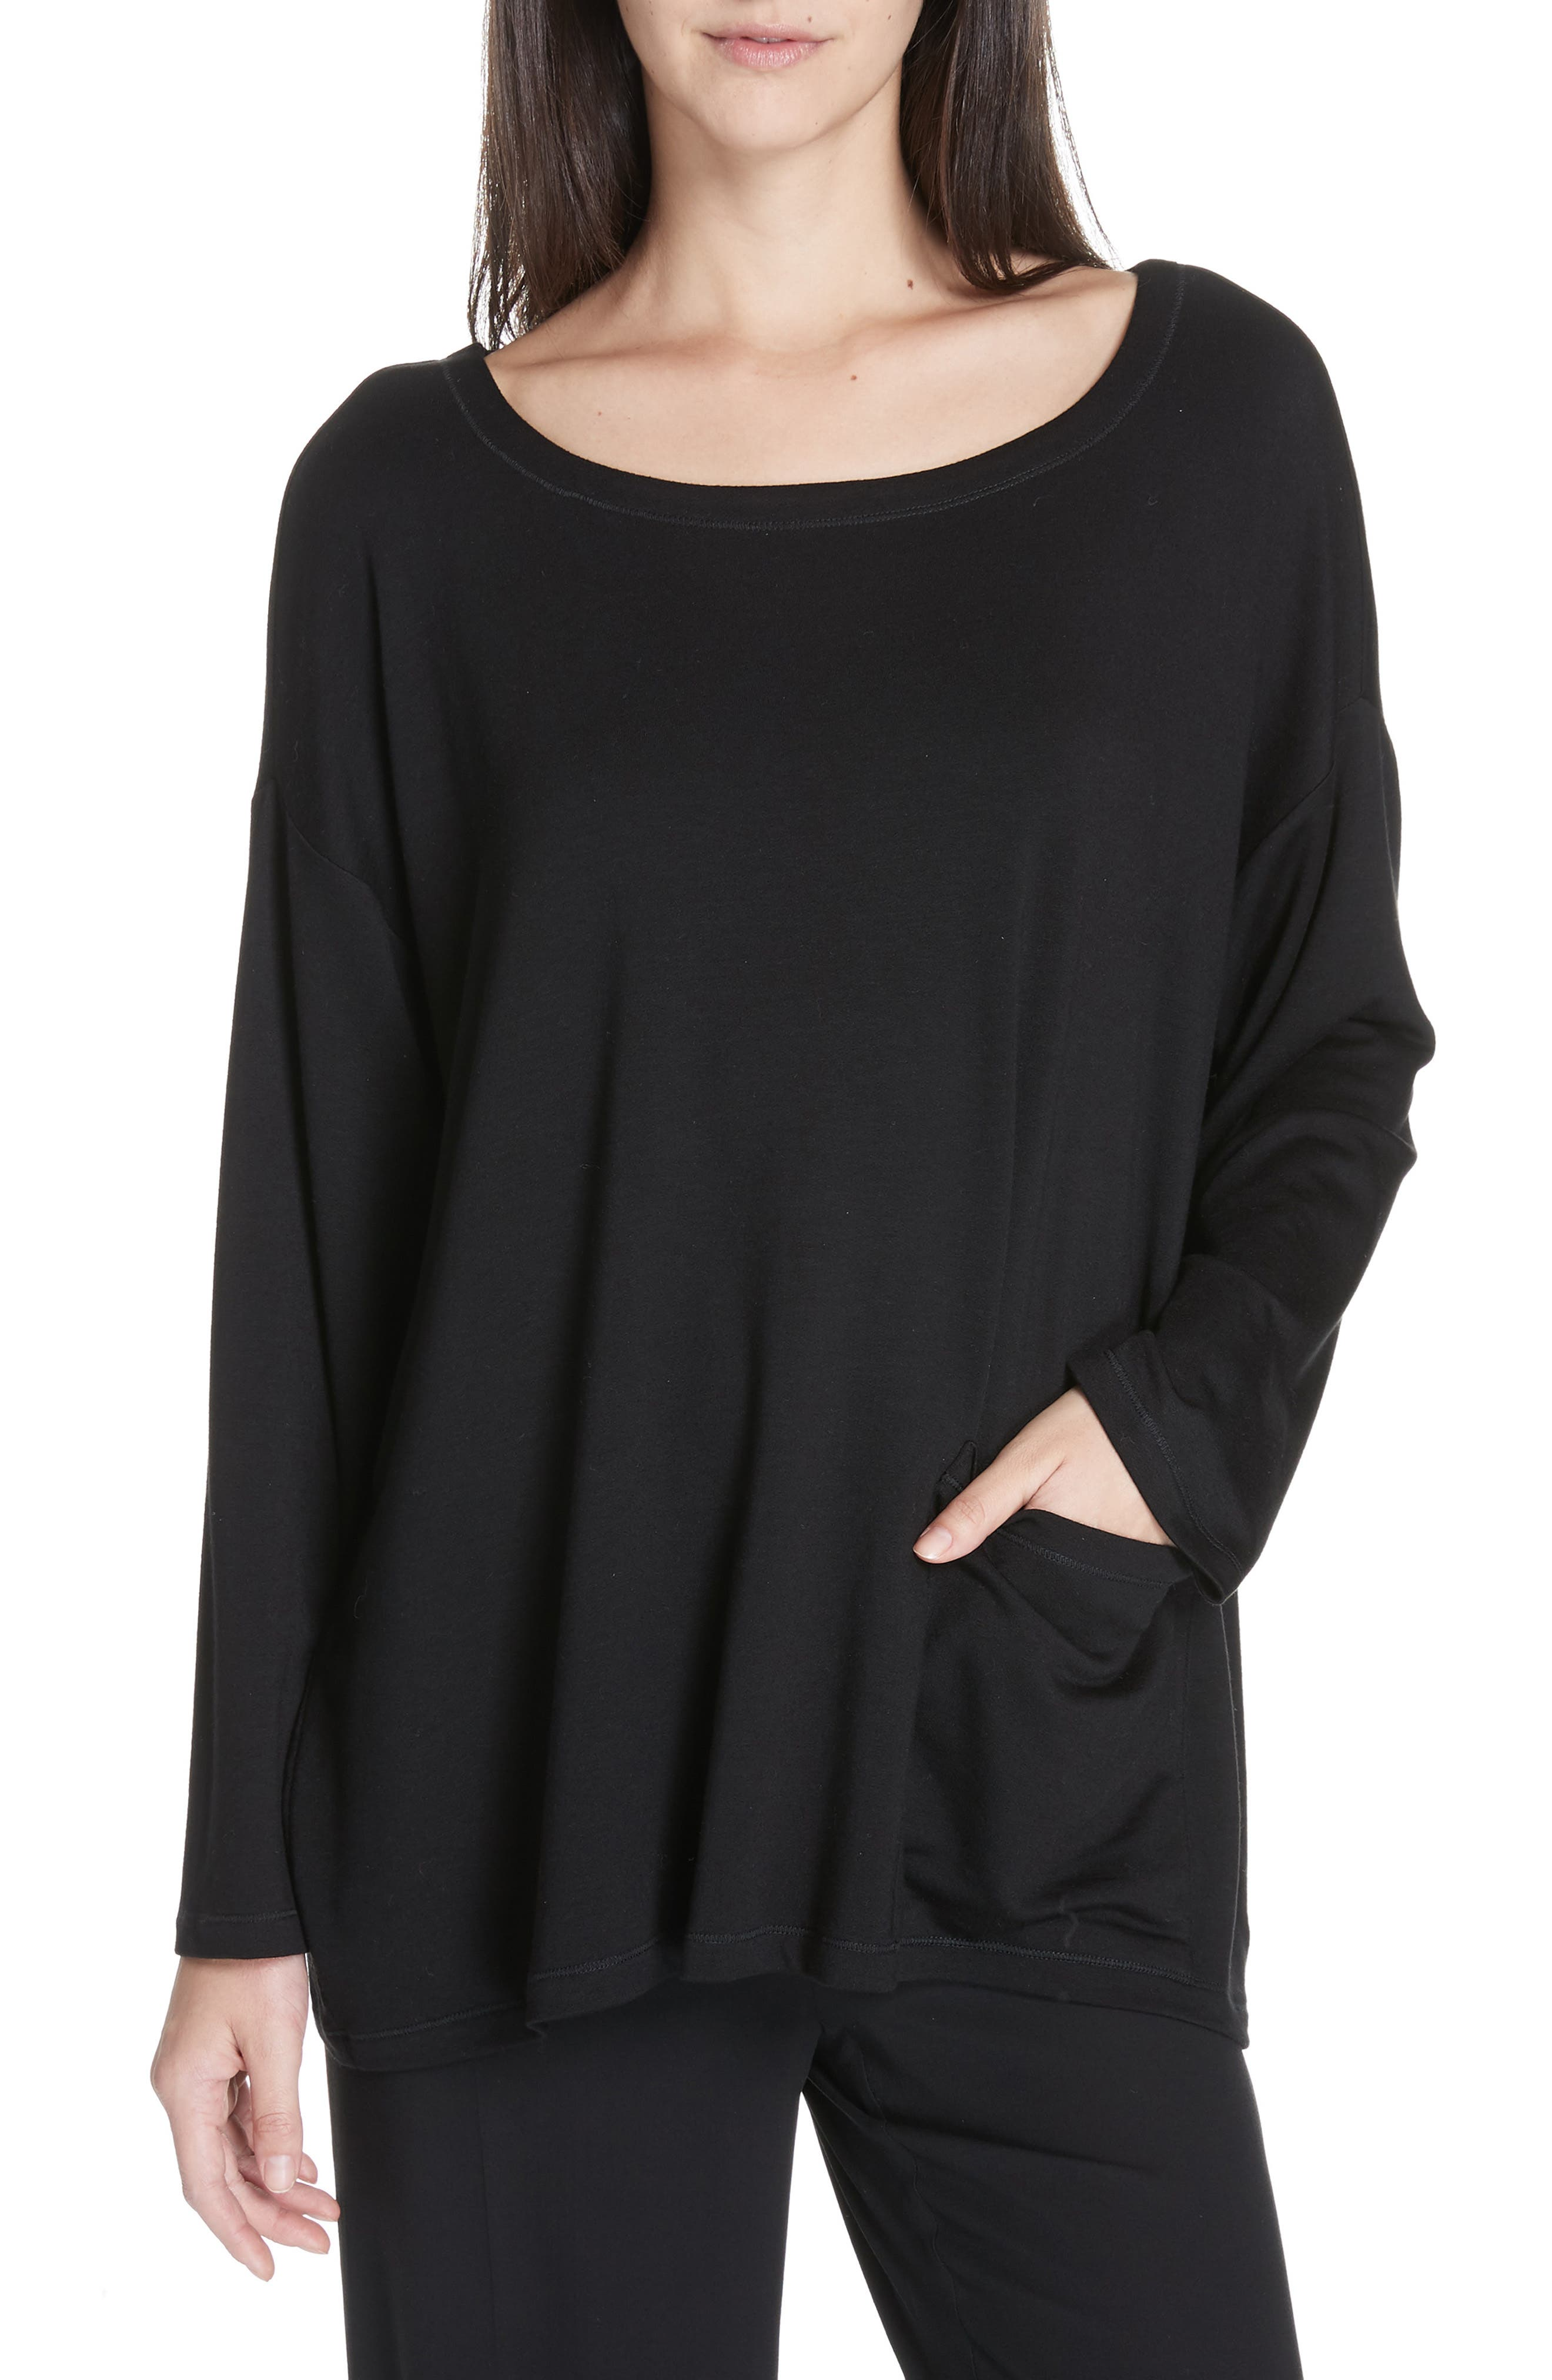 EILEEN FISHER, Stretch Terry Top, Main thumbnail 1, color, BLACK